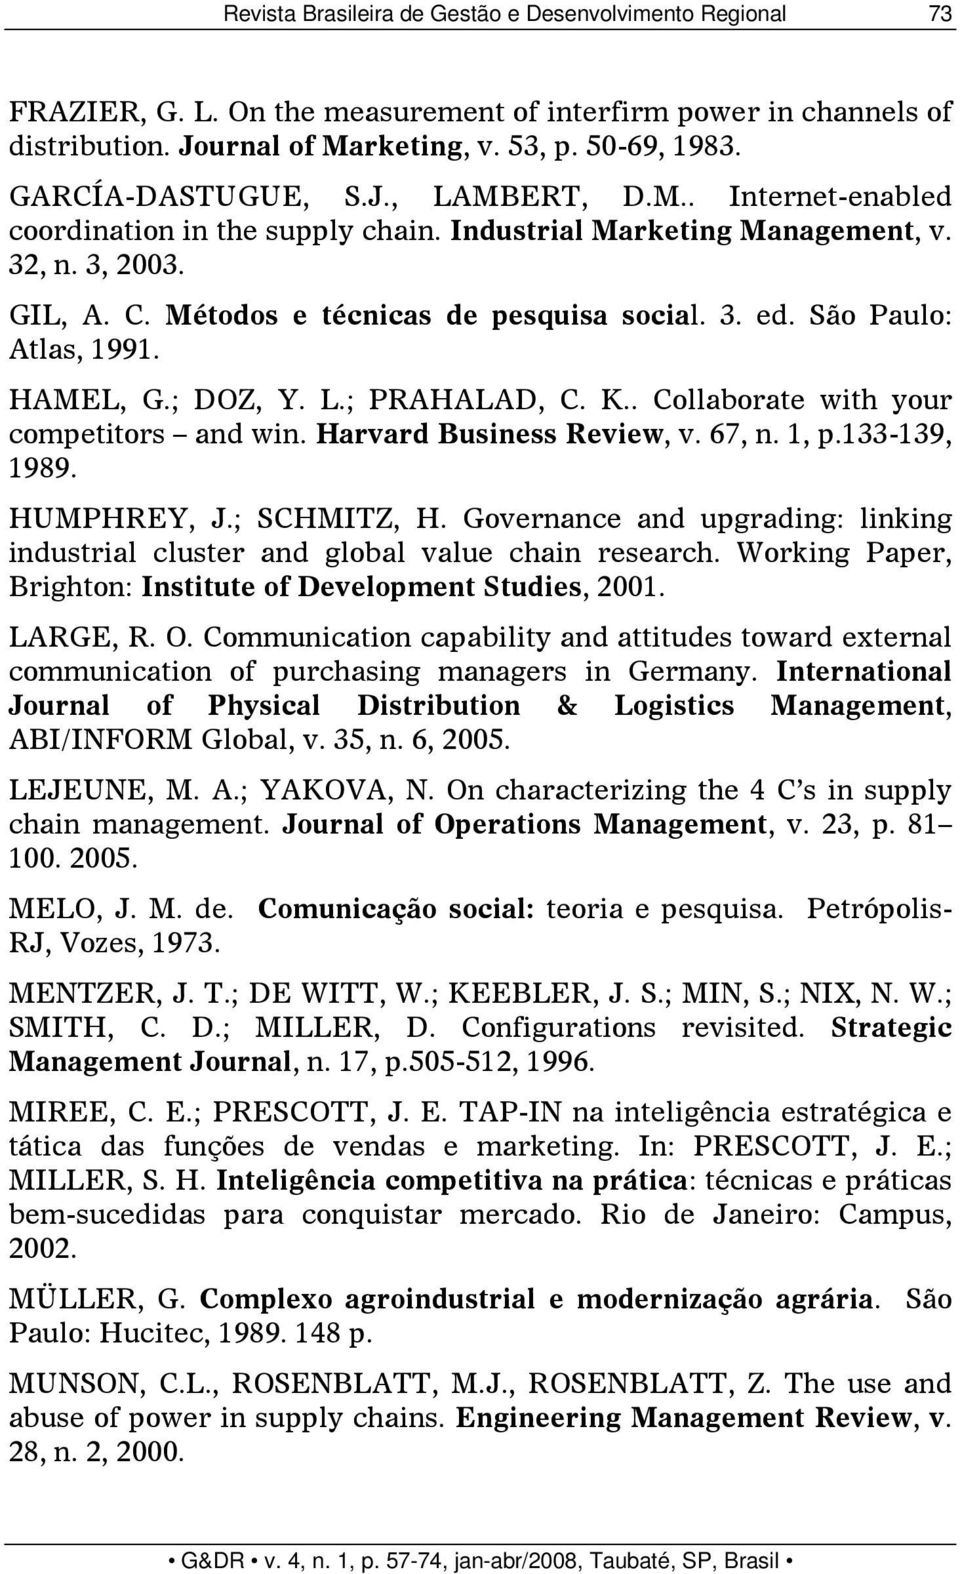 São Paulo: Atlas, 1991. HAMEL, G.; DOZ, Y. L.; PRAHALAD, C. K.. Collaborate with your competitors and win. Harvard Business Review, v. 67, n. 1, p.133-139, 1989. HUMPHREY, J.; SCHMITZ, H.